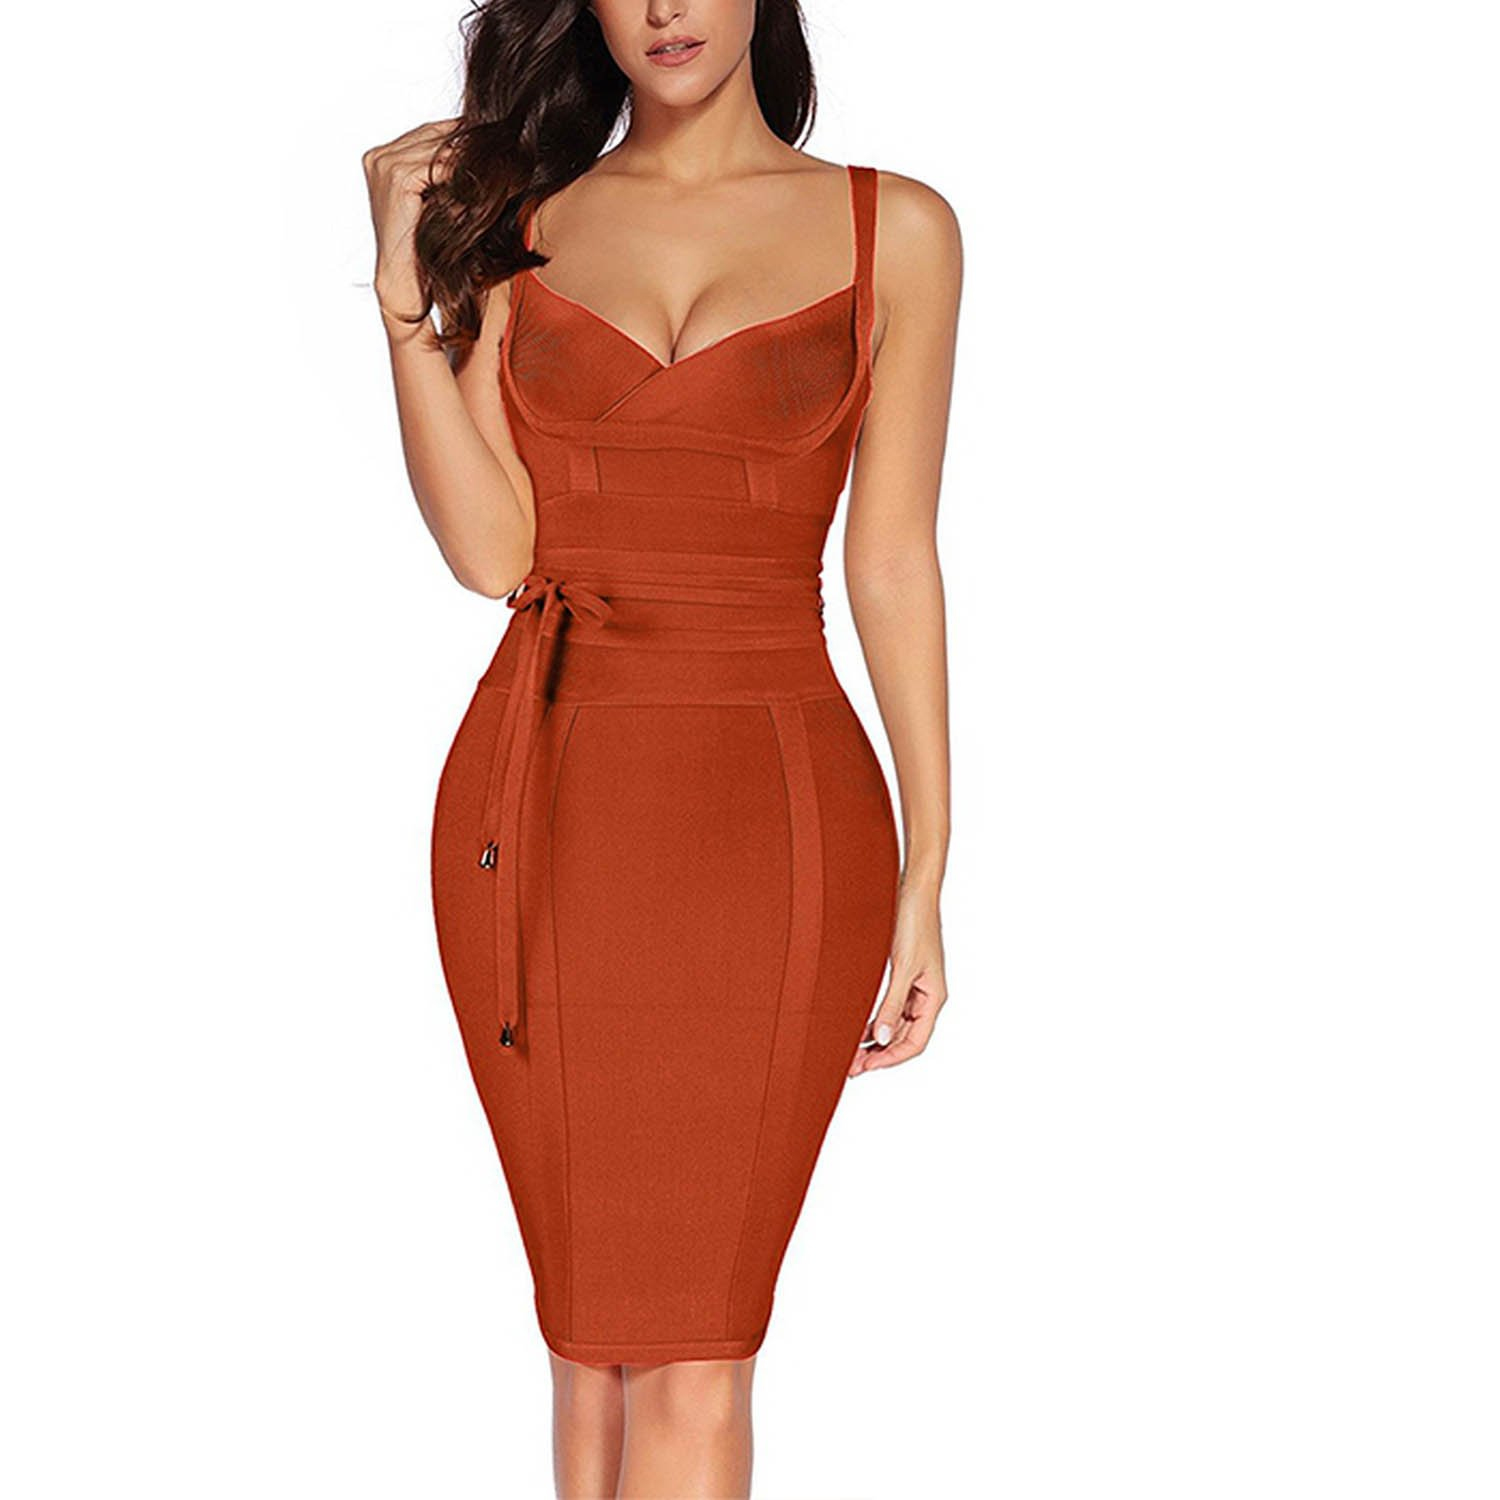 UNIQUE SHOP Women Bandage Dress 2017 Rayon Sleeveless Summer New Arrivals Sexy Deep v Neck Vestido Bodycon Ban at Amazon Womens Clothing store: